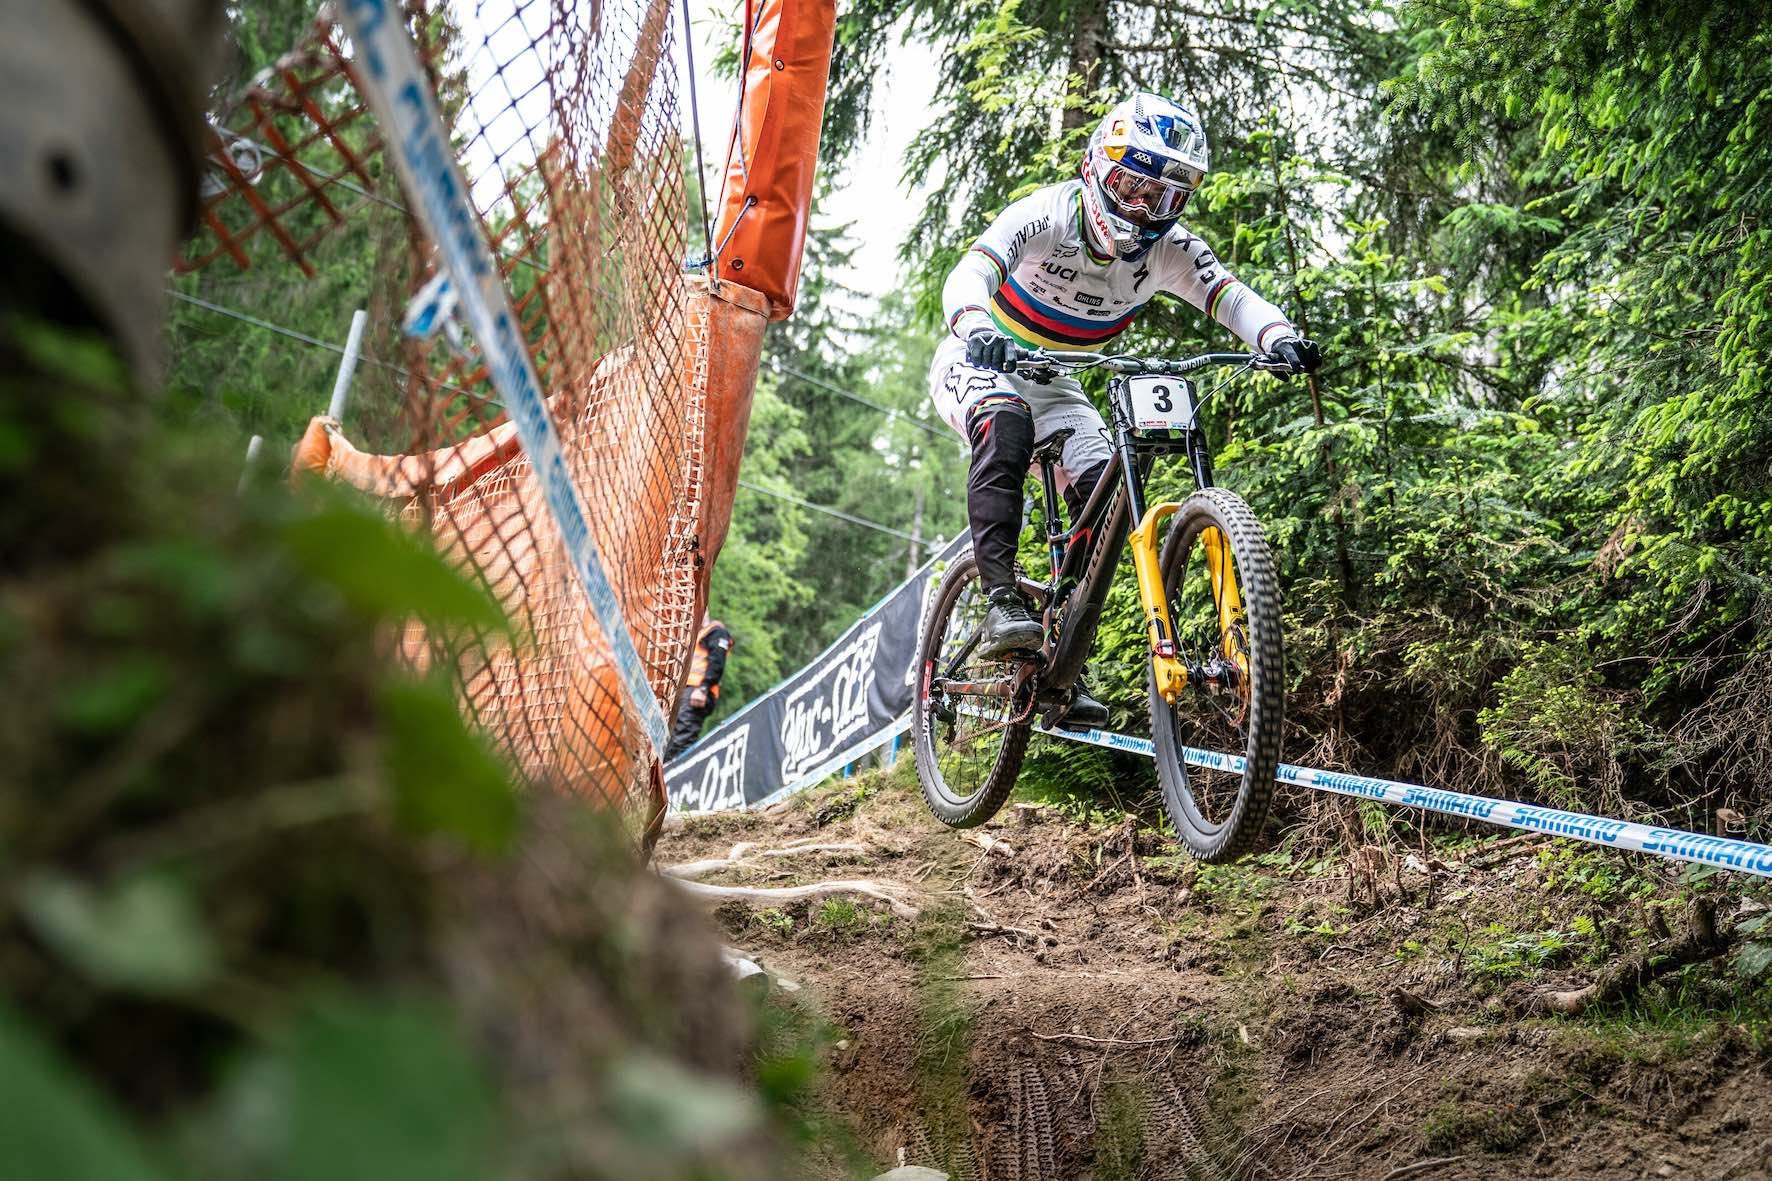 Loic Bruni racing the 2019 Downhill MTB World Cup in Leogang, Austria